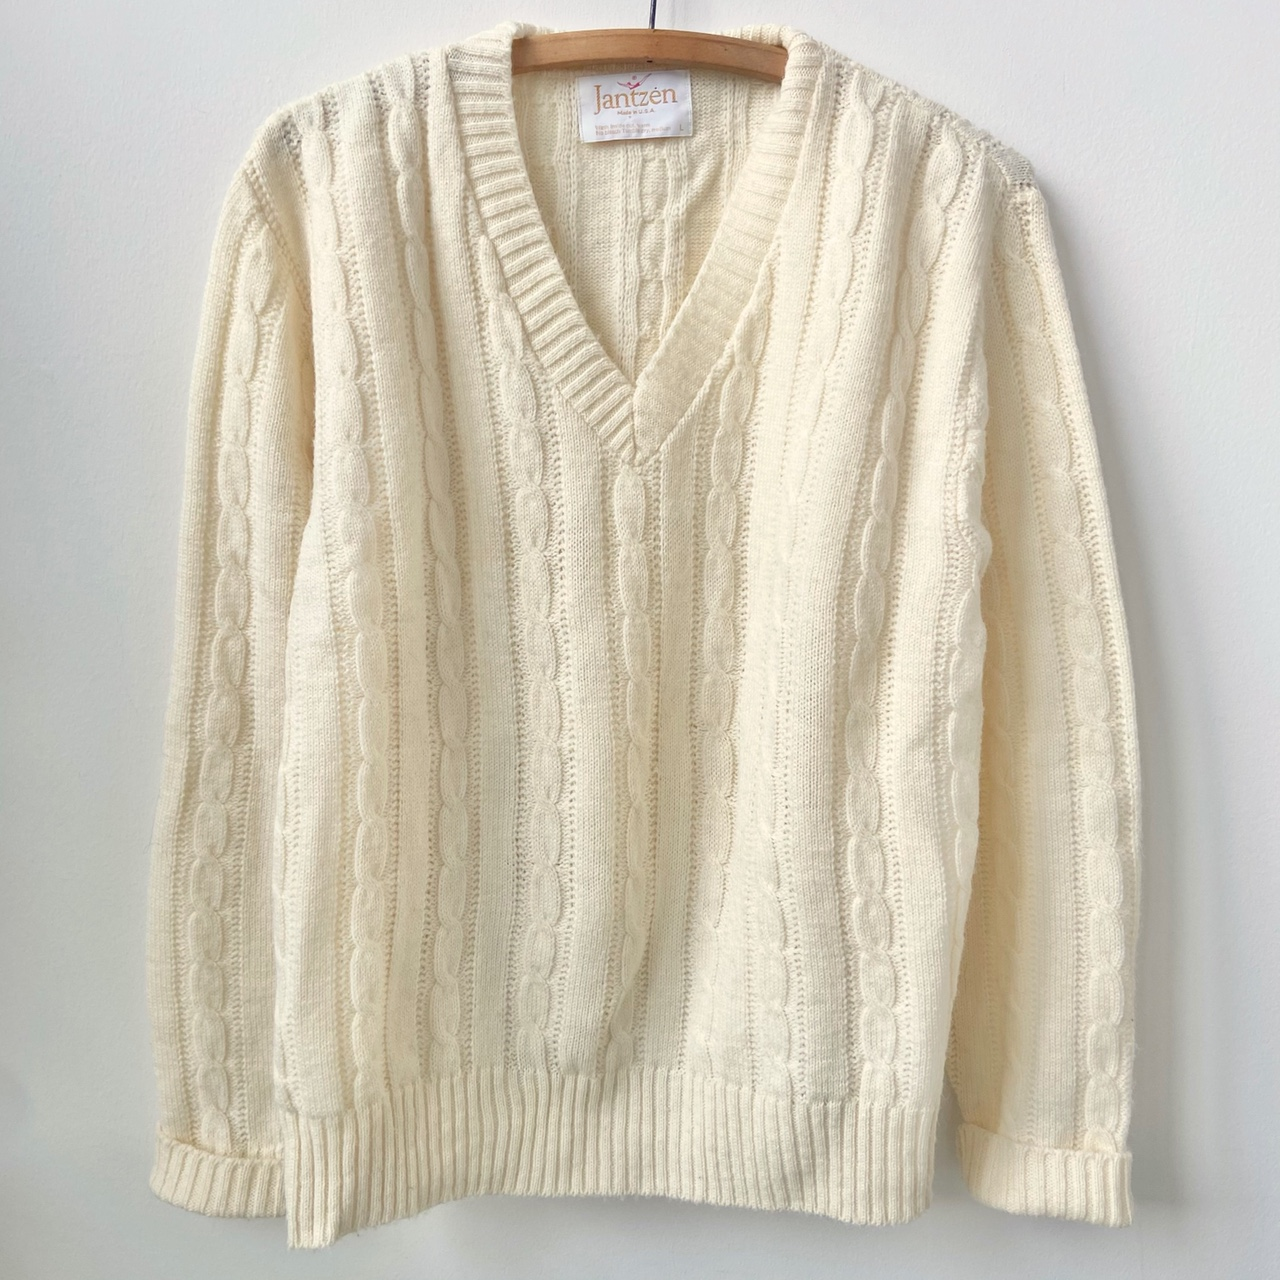 Product Image 1 - Vintage cream cable knit v